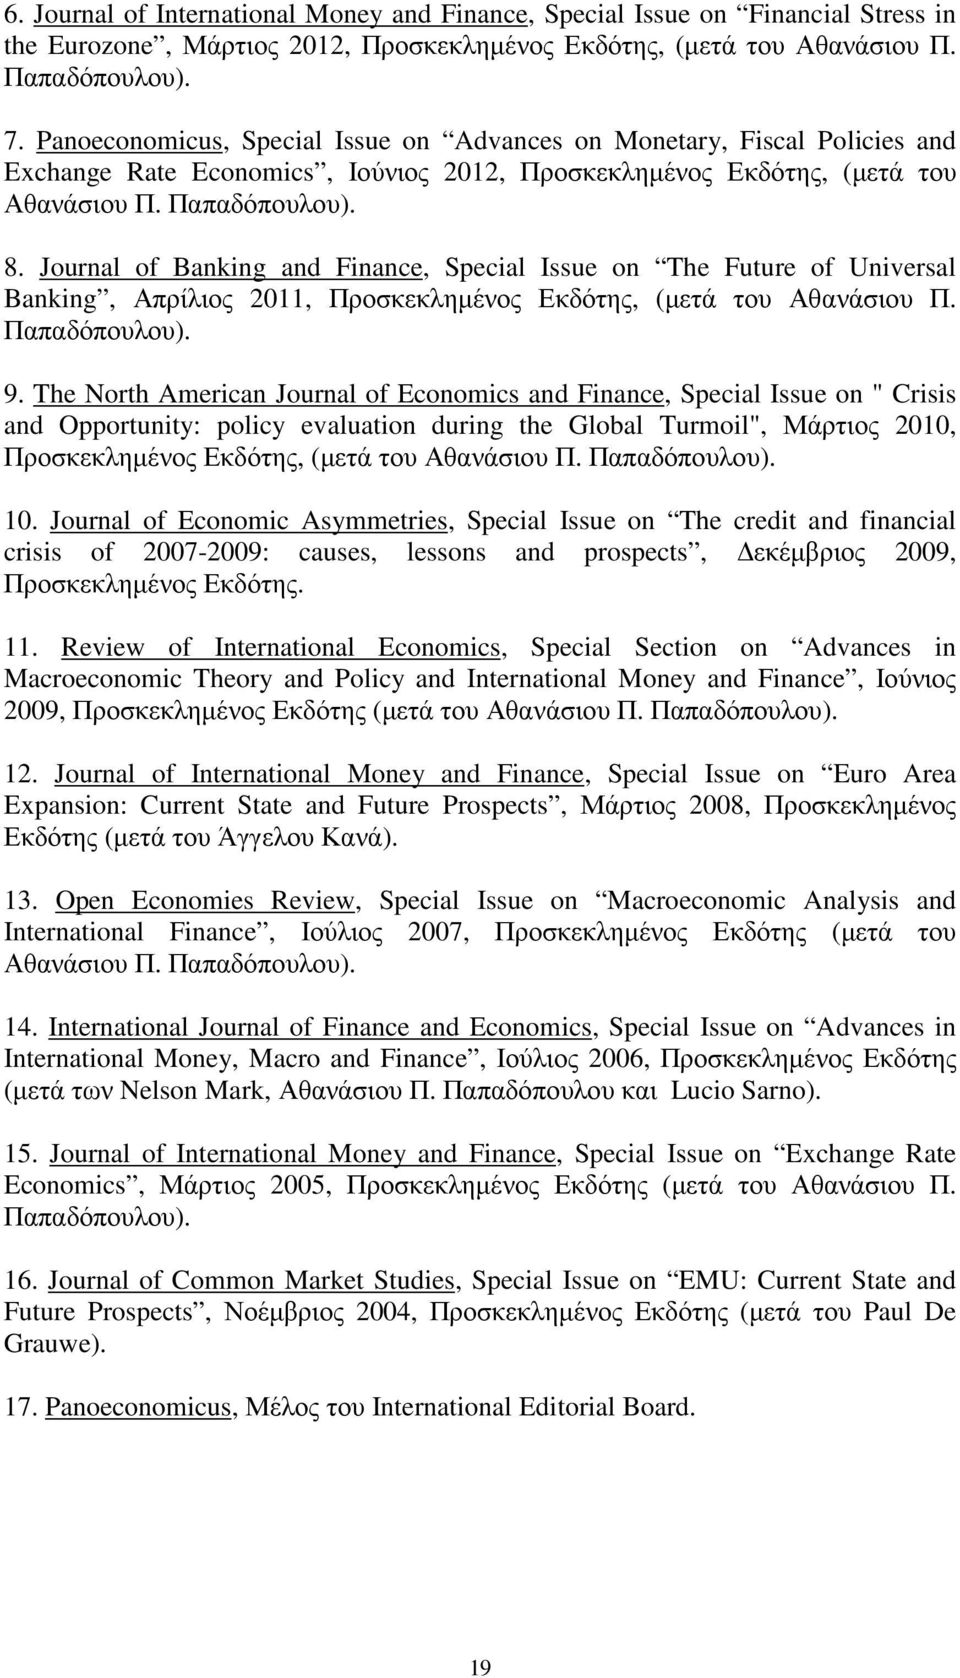 Journal of Banking and Finance, Special Issue on The Future of Universal Banking, Απρίλιος 2011, Προσκεκληµένος Εκδότης, (µετά του Αθανάσιου Π. Παπαδόπουλου). 9.